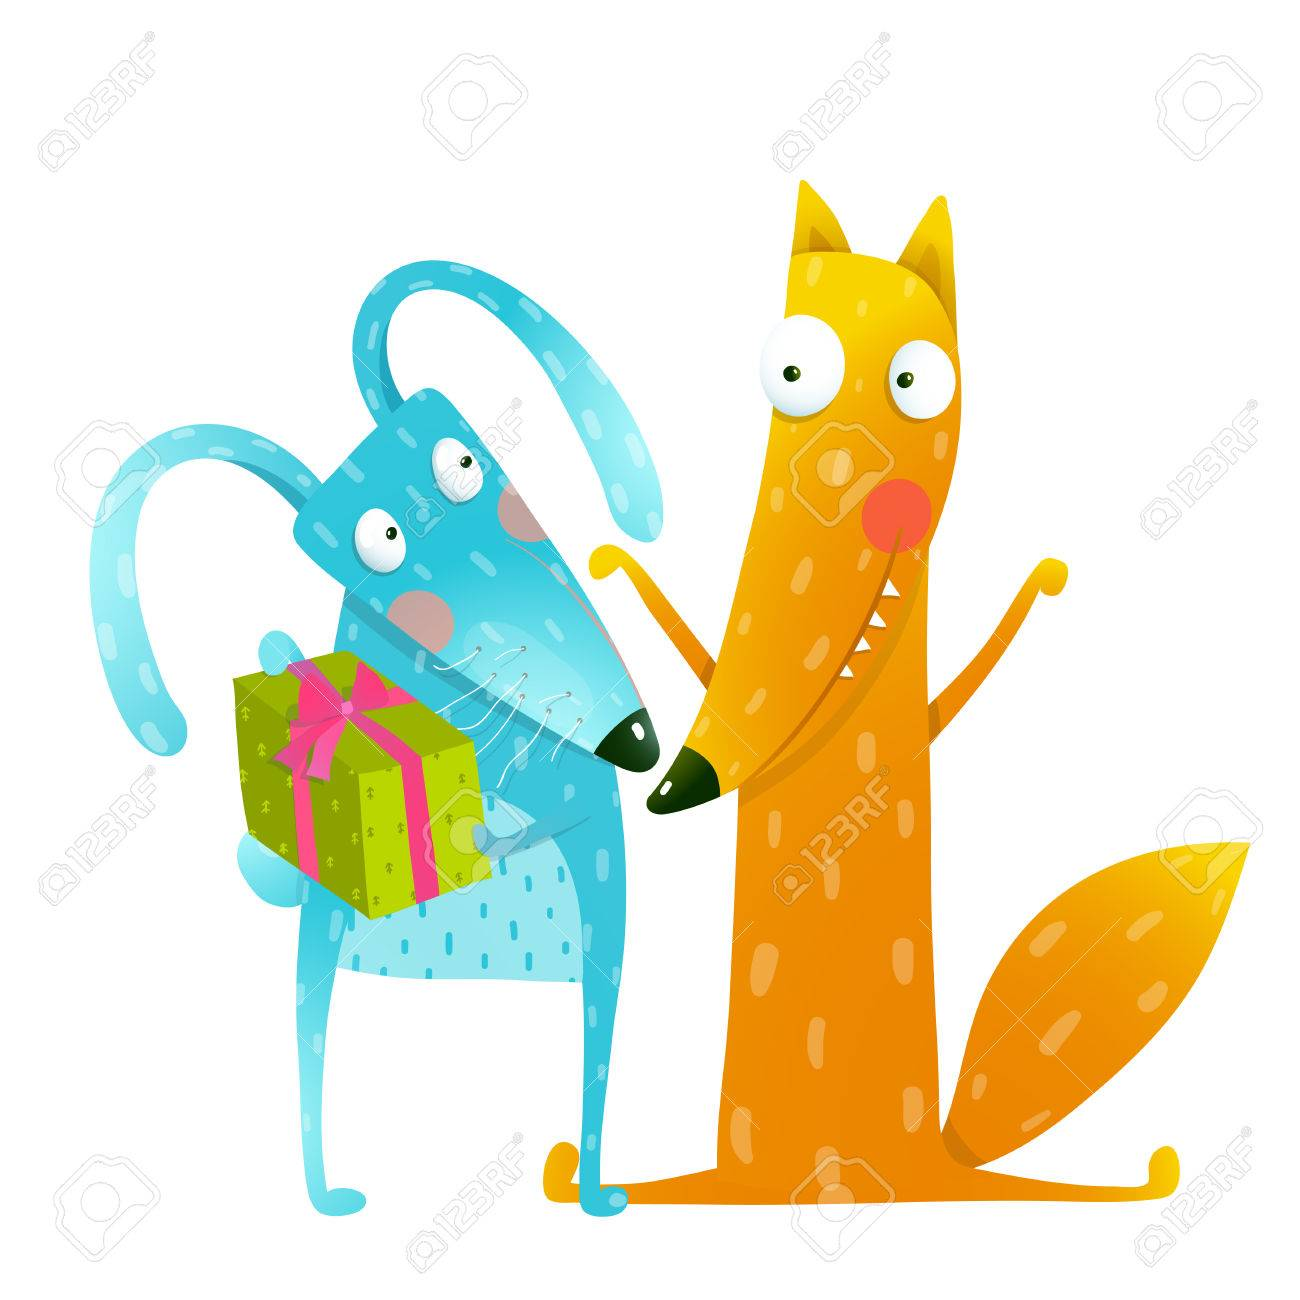 Happy birthday card template with bunny and fox characters cute happy birthday card template with bunny and fox characters cute red fox and blue bunny kristyandbryce Gallery